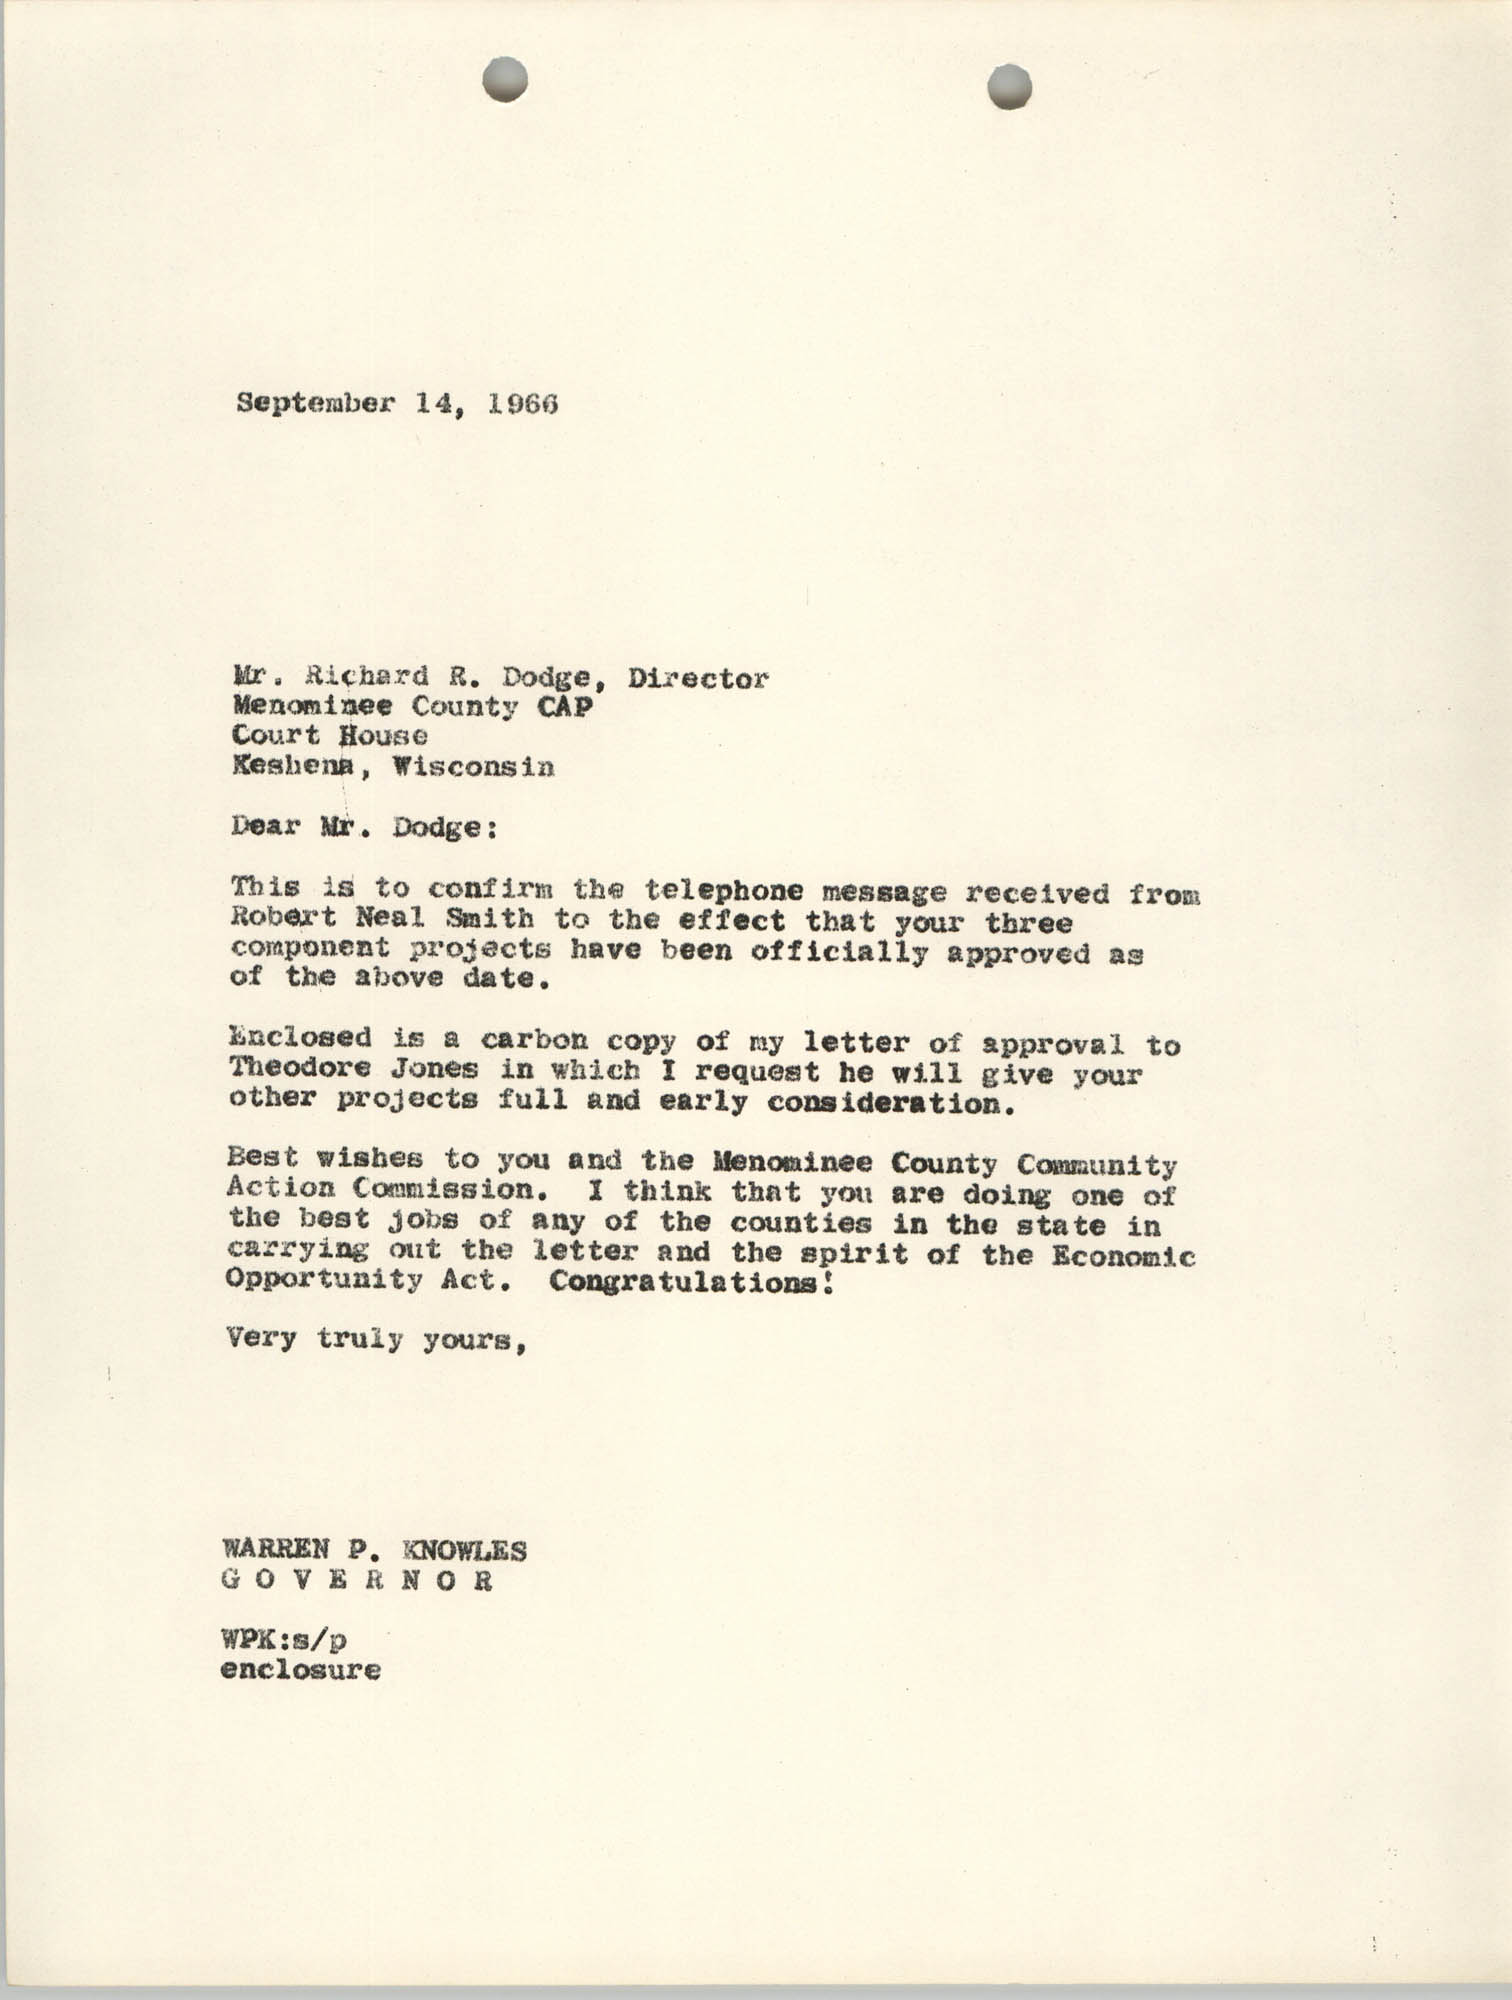 Letter from Warren P. Knowles to Richard R. Dodge